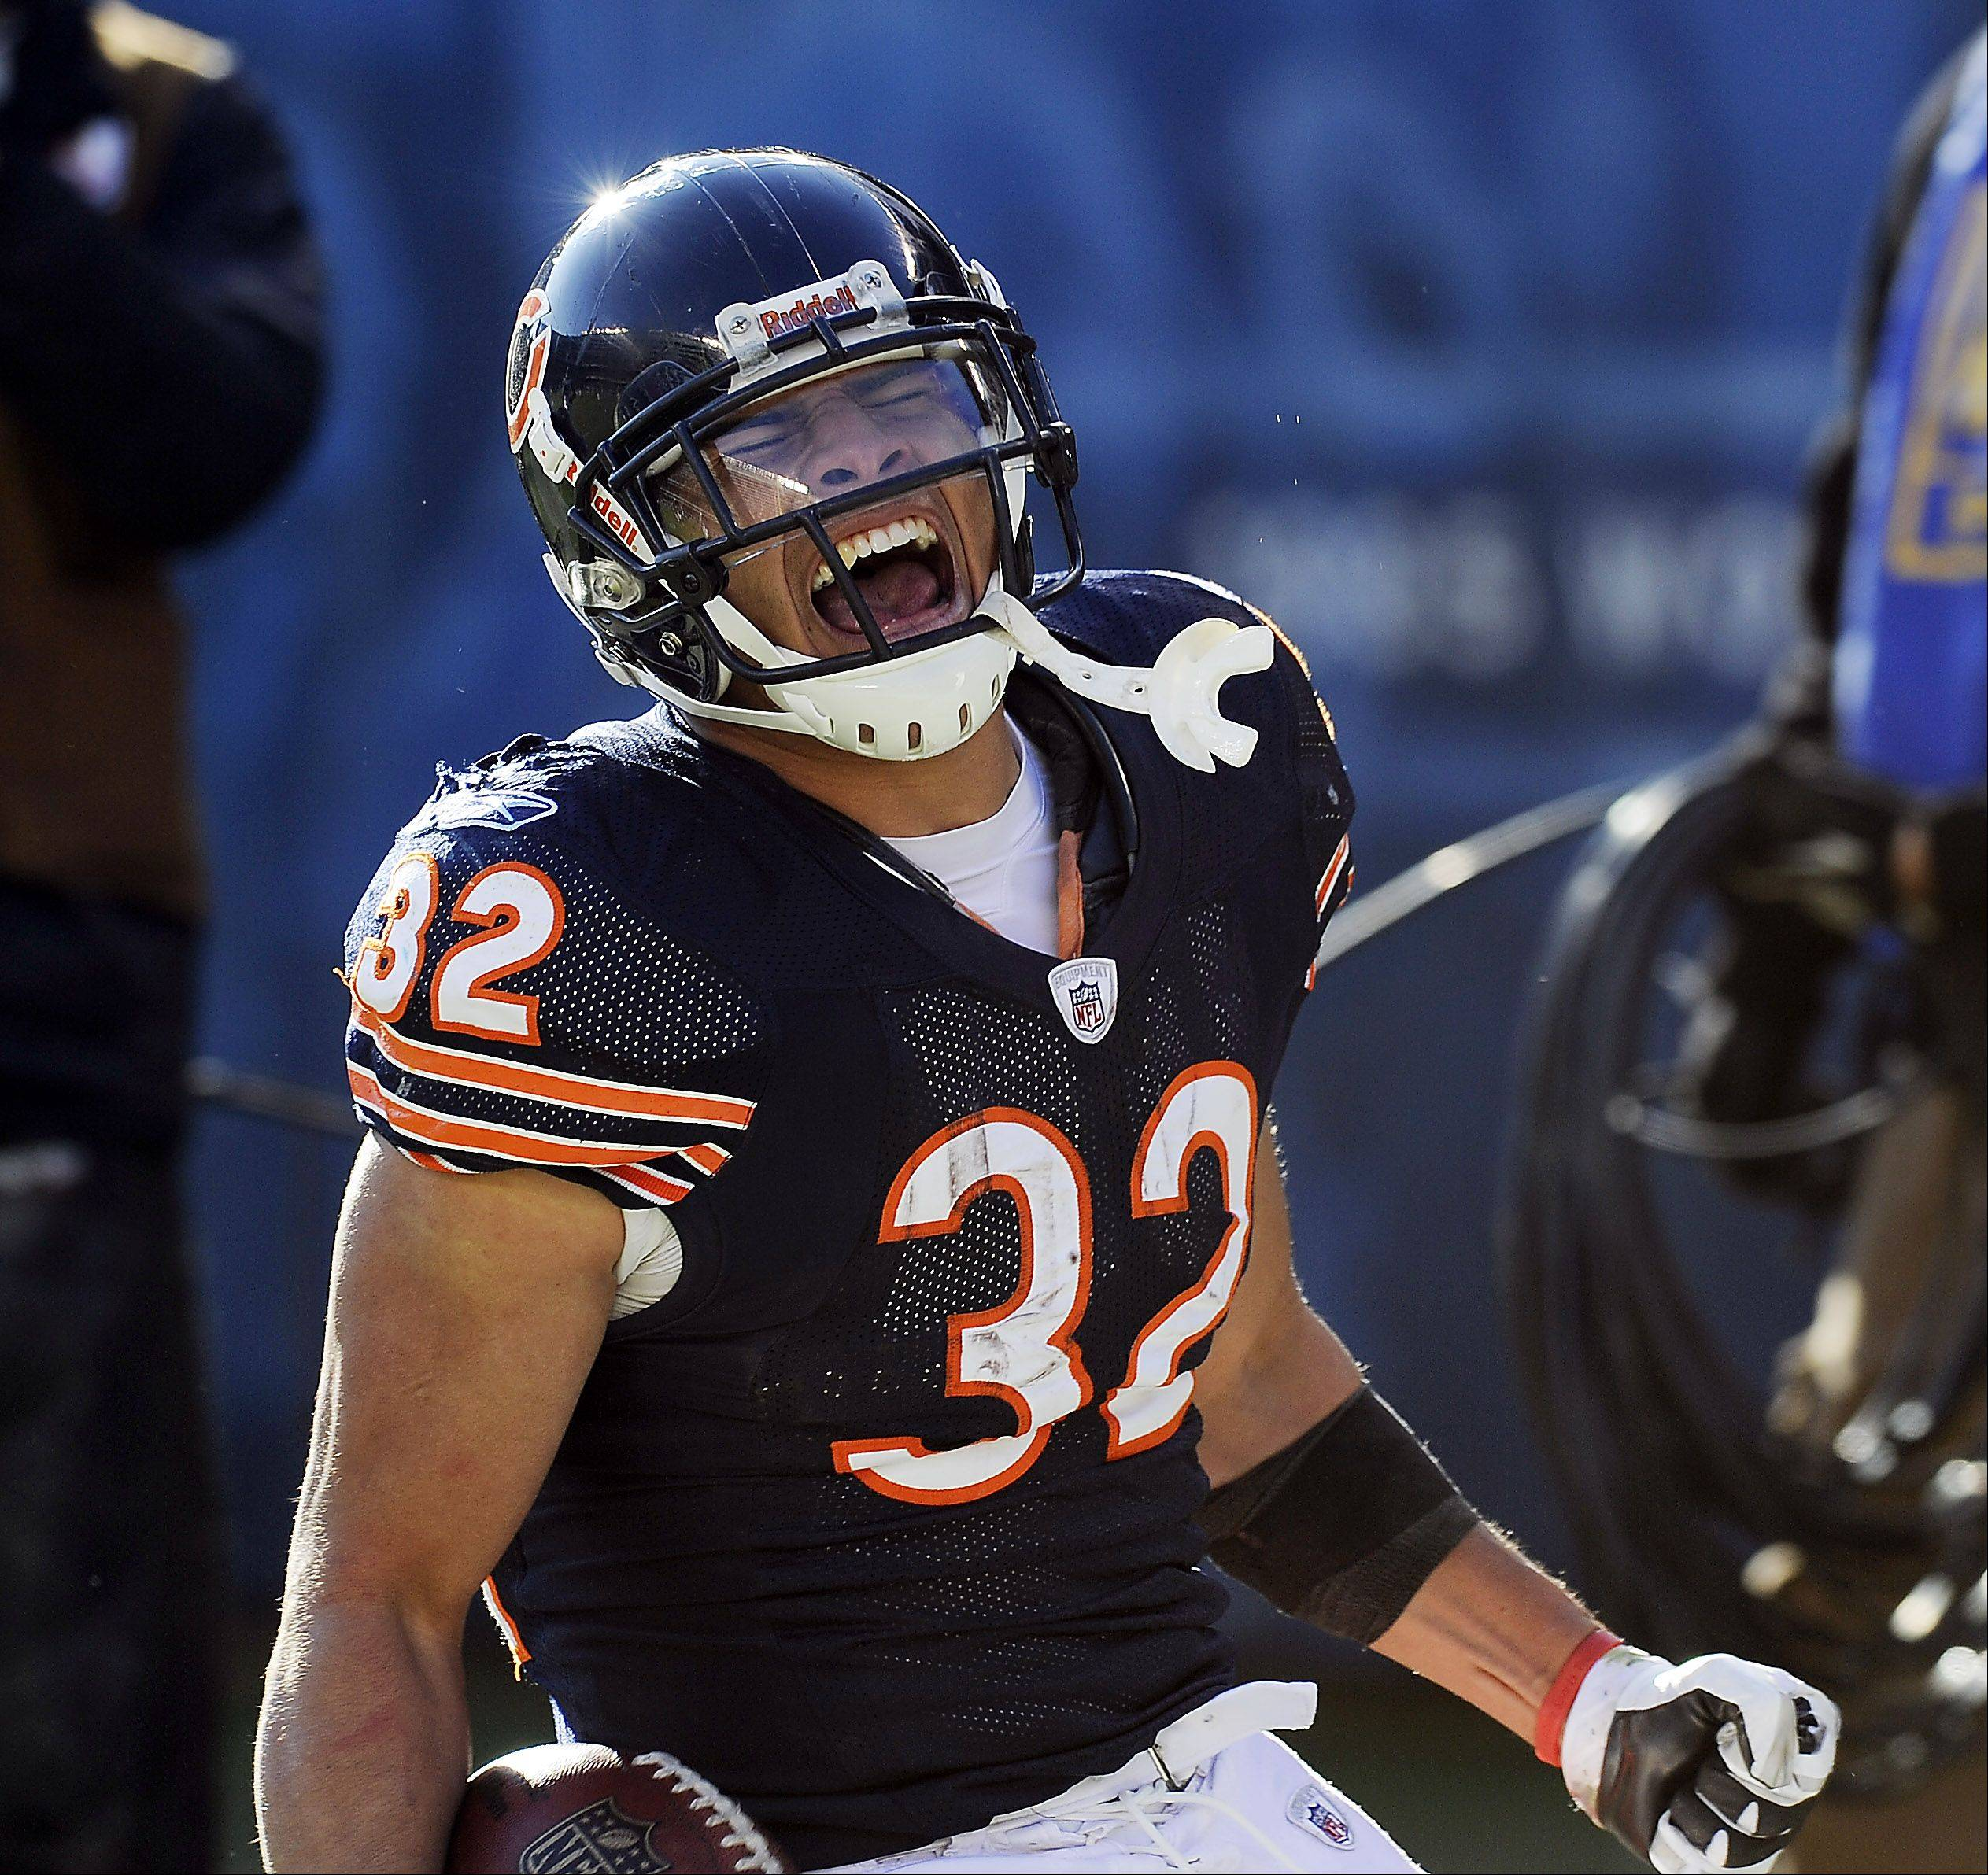 Former Bears running back Kahlil Bell was signed Tuesday to replace Michael Bush, who was placed on season-ending injured reserve with a rib injury.